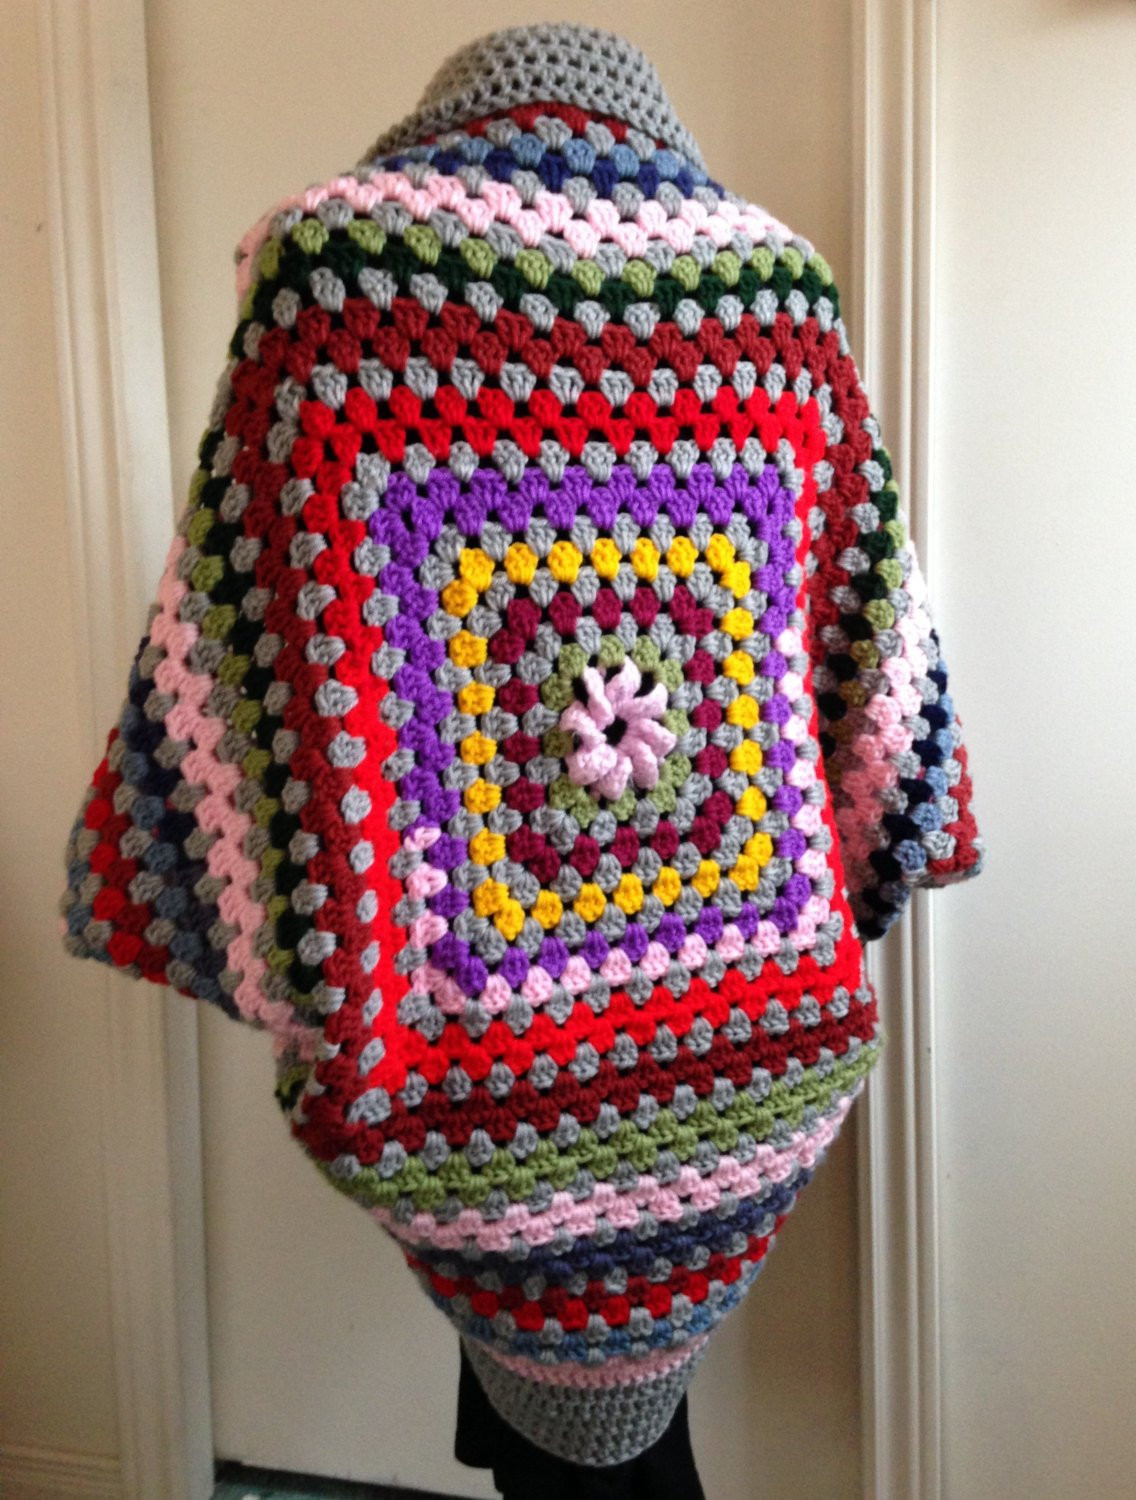 Best Of Crochet Granny Square Cocoon Sweater Cardigan Shrug In Grey Granny Square Cardigan Of Innovative 50 Pics Granny Square Cardigan